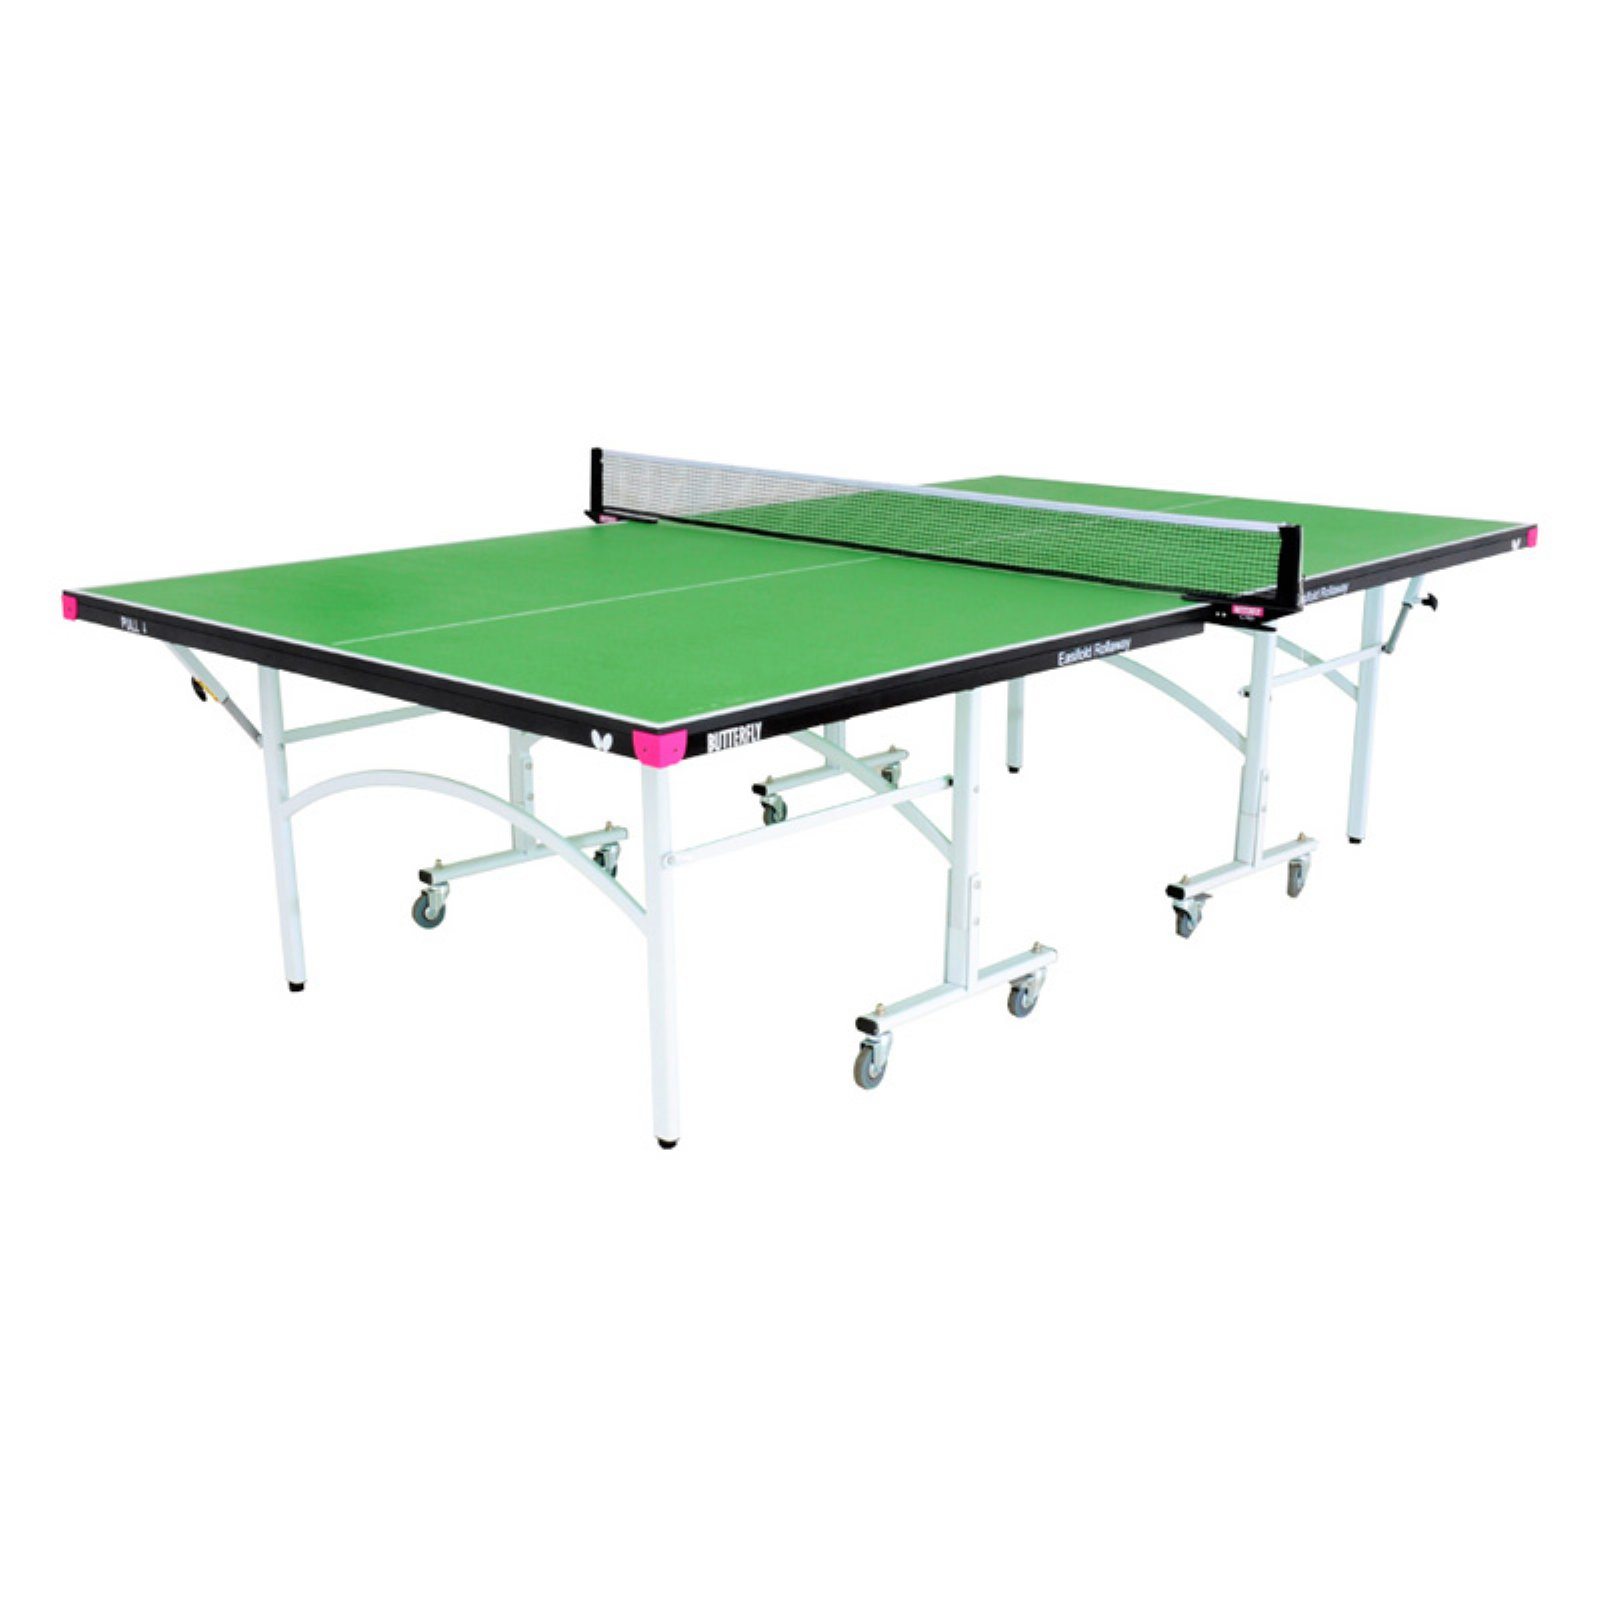 Butterfly Easifold 19 Rollaway Ping Pong Table,Green by Generic